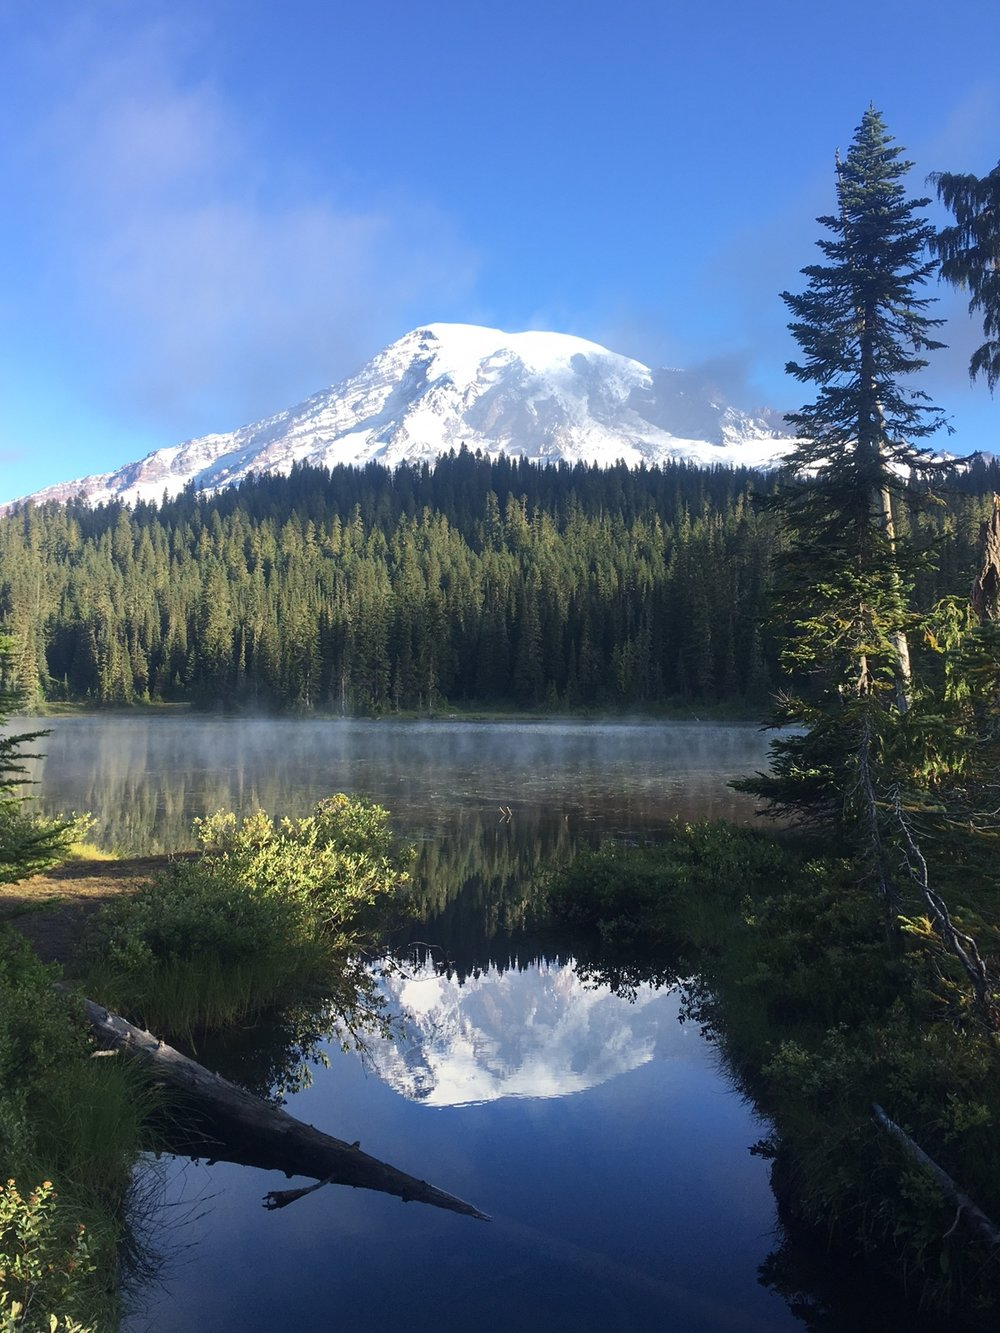 Mount Rainier reflected at Reflection Lakes in Rainier National Park in Washington State. Photo credit: Jonathan Irish